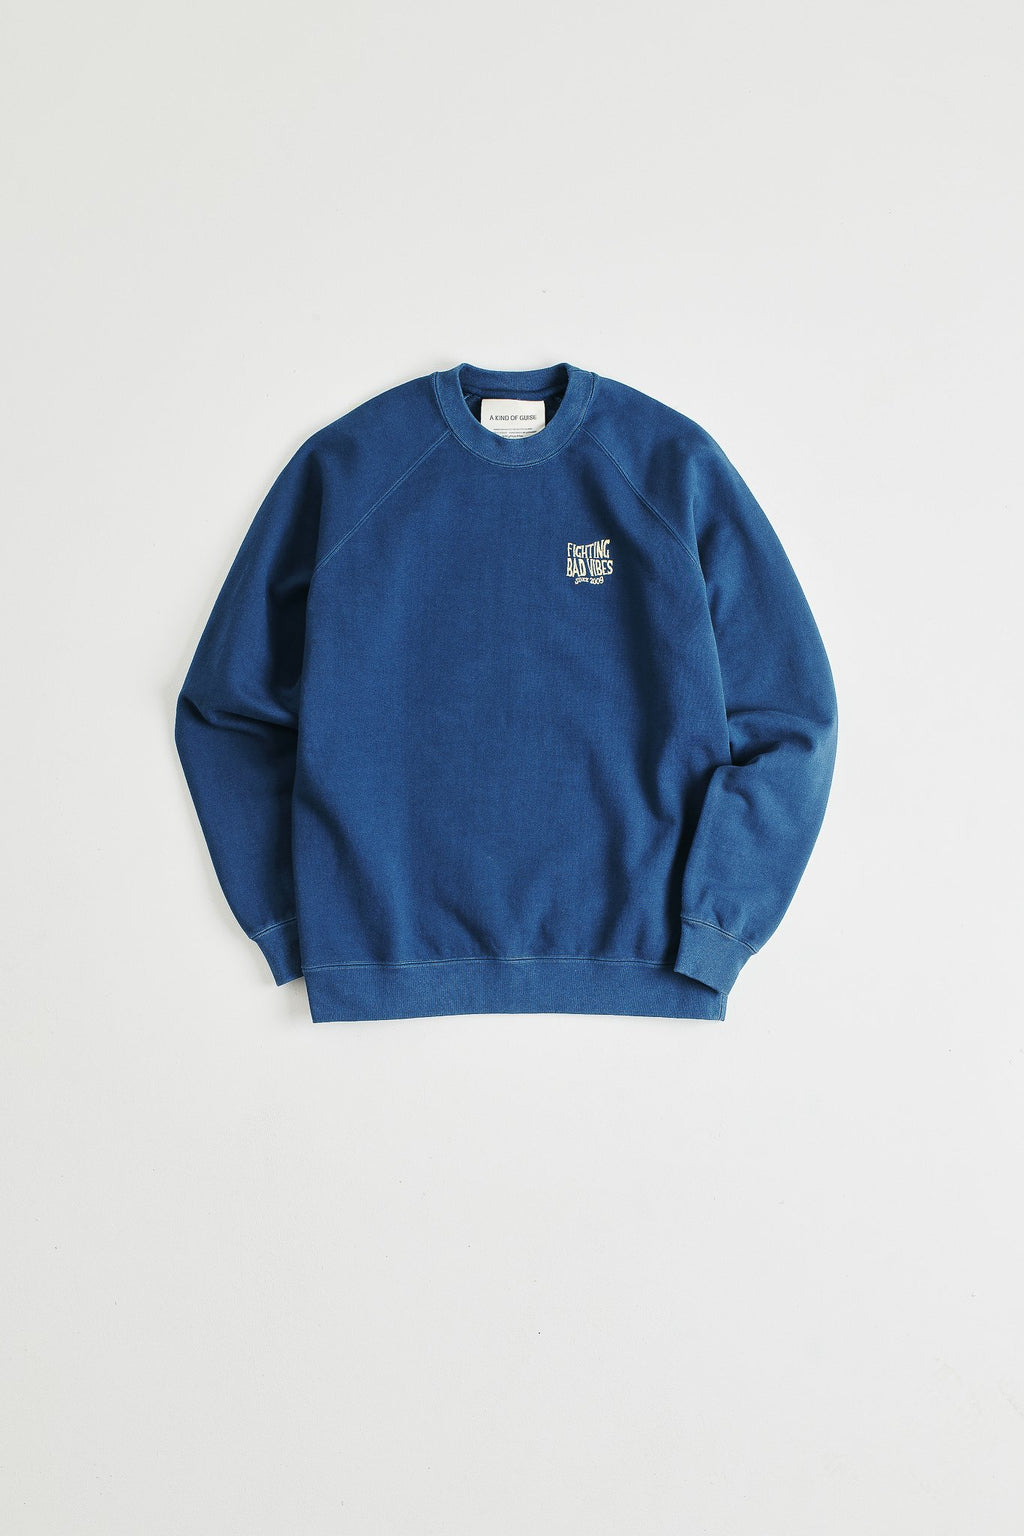 A Kind of Guise Mawu Crewneck, Ocean Blue-S